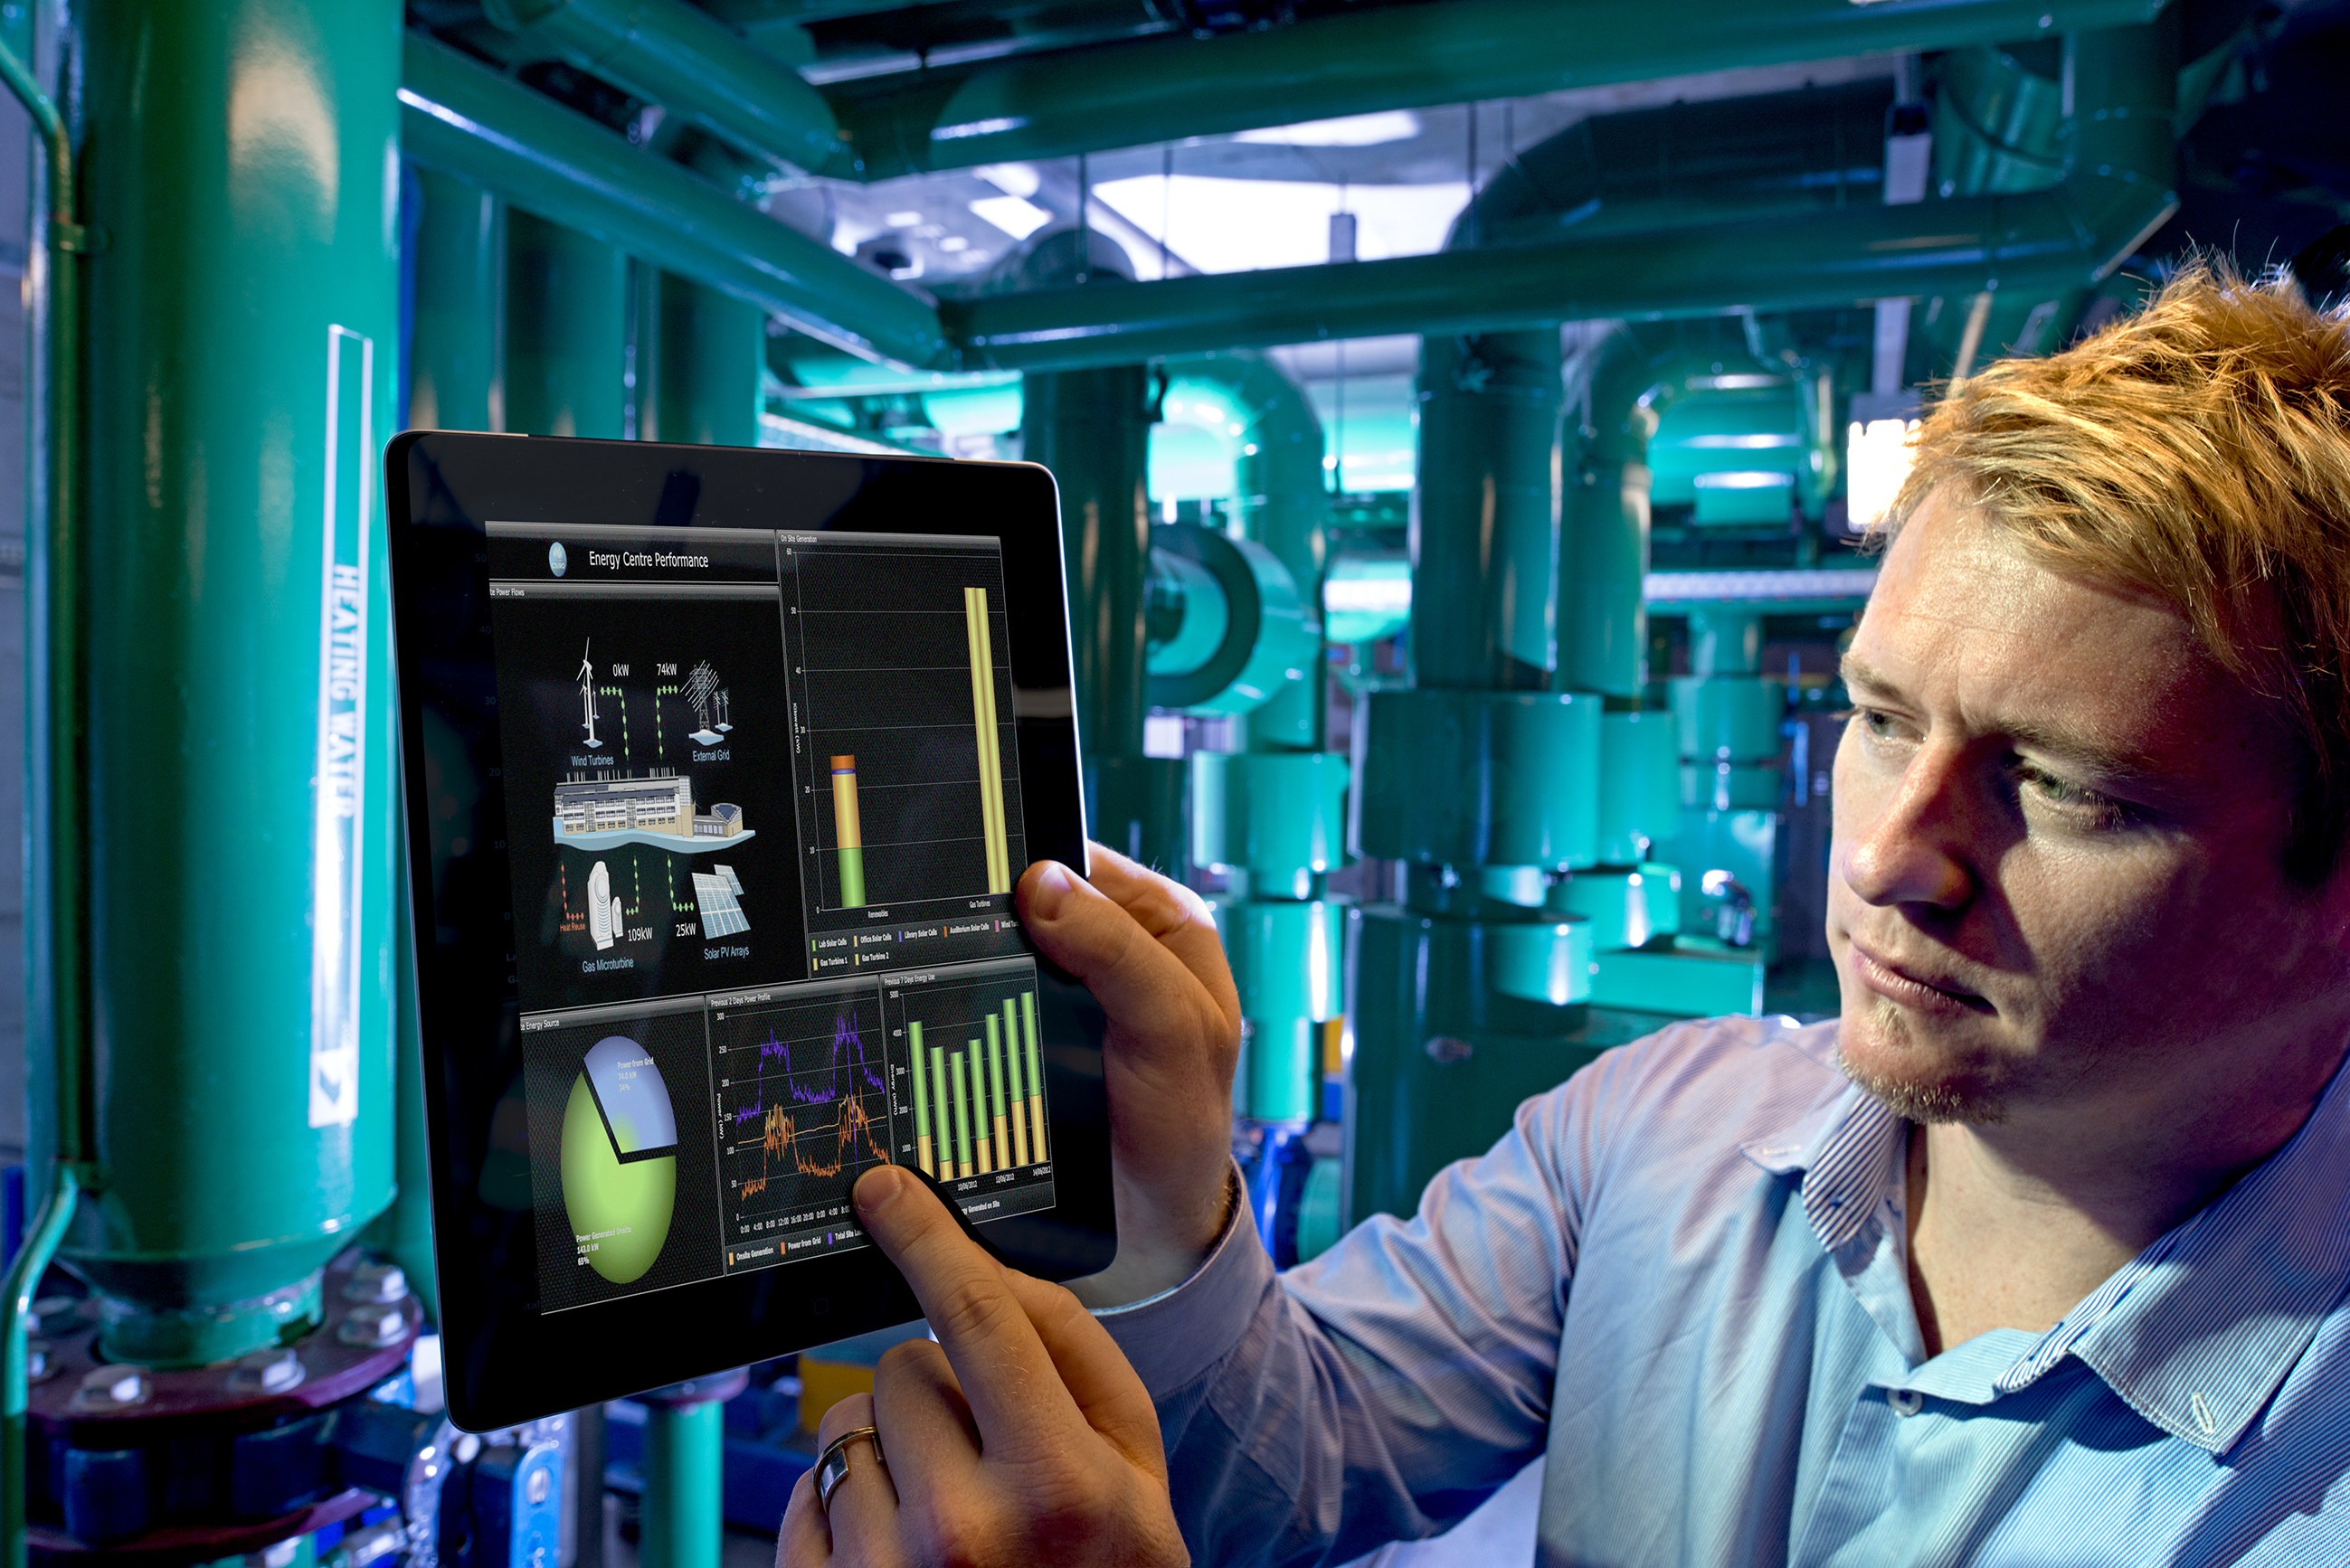 A man interacts with a tablet interface in an energy facility.